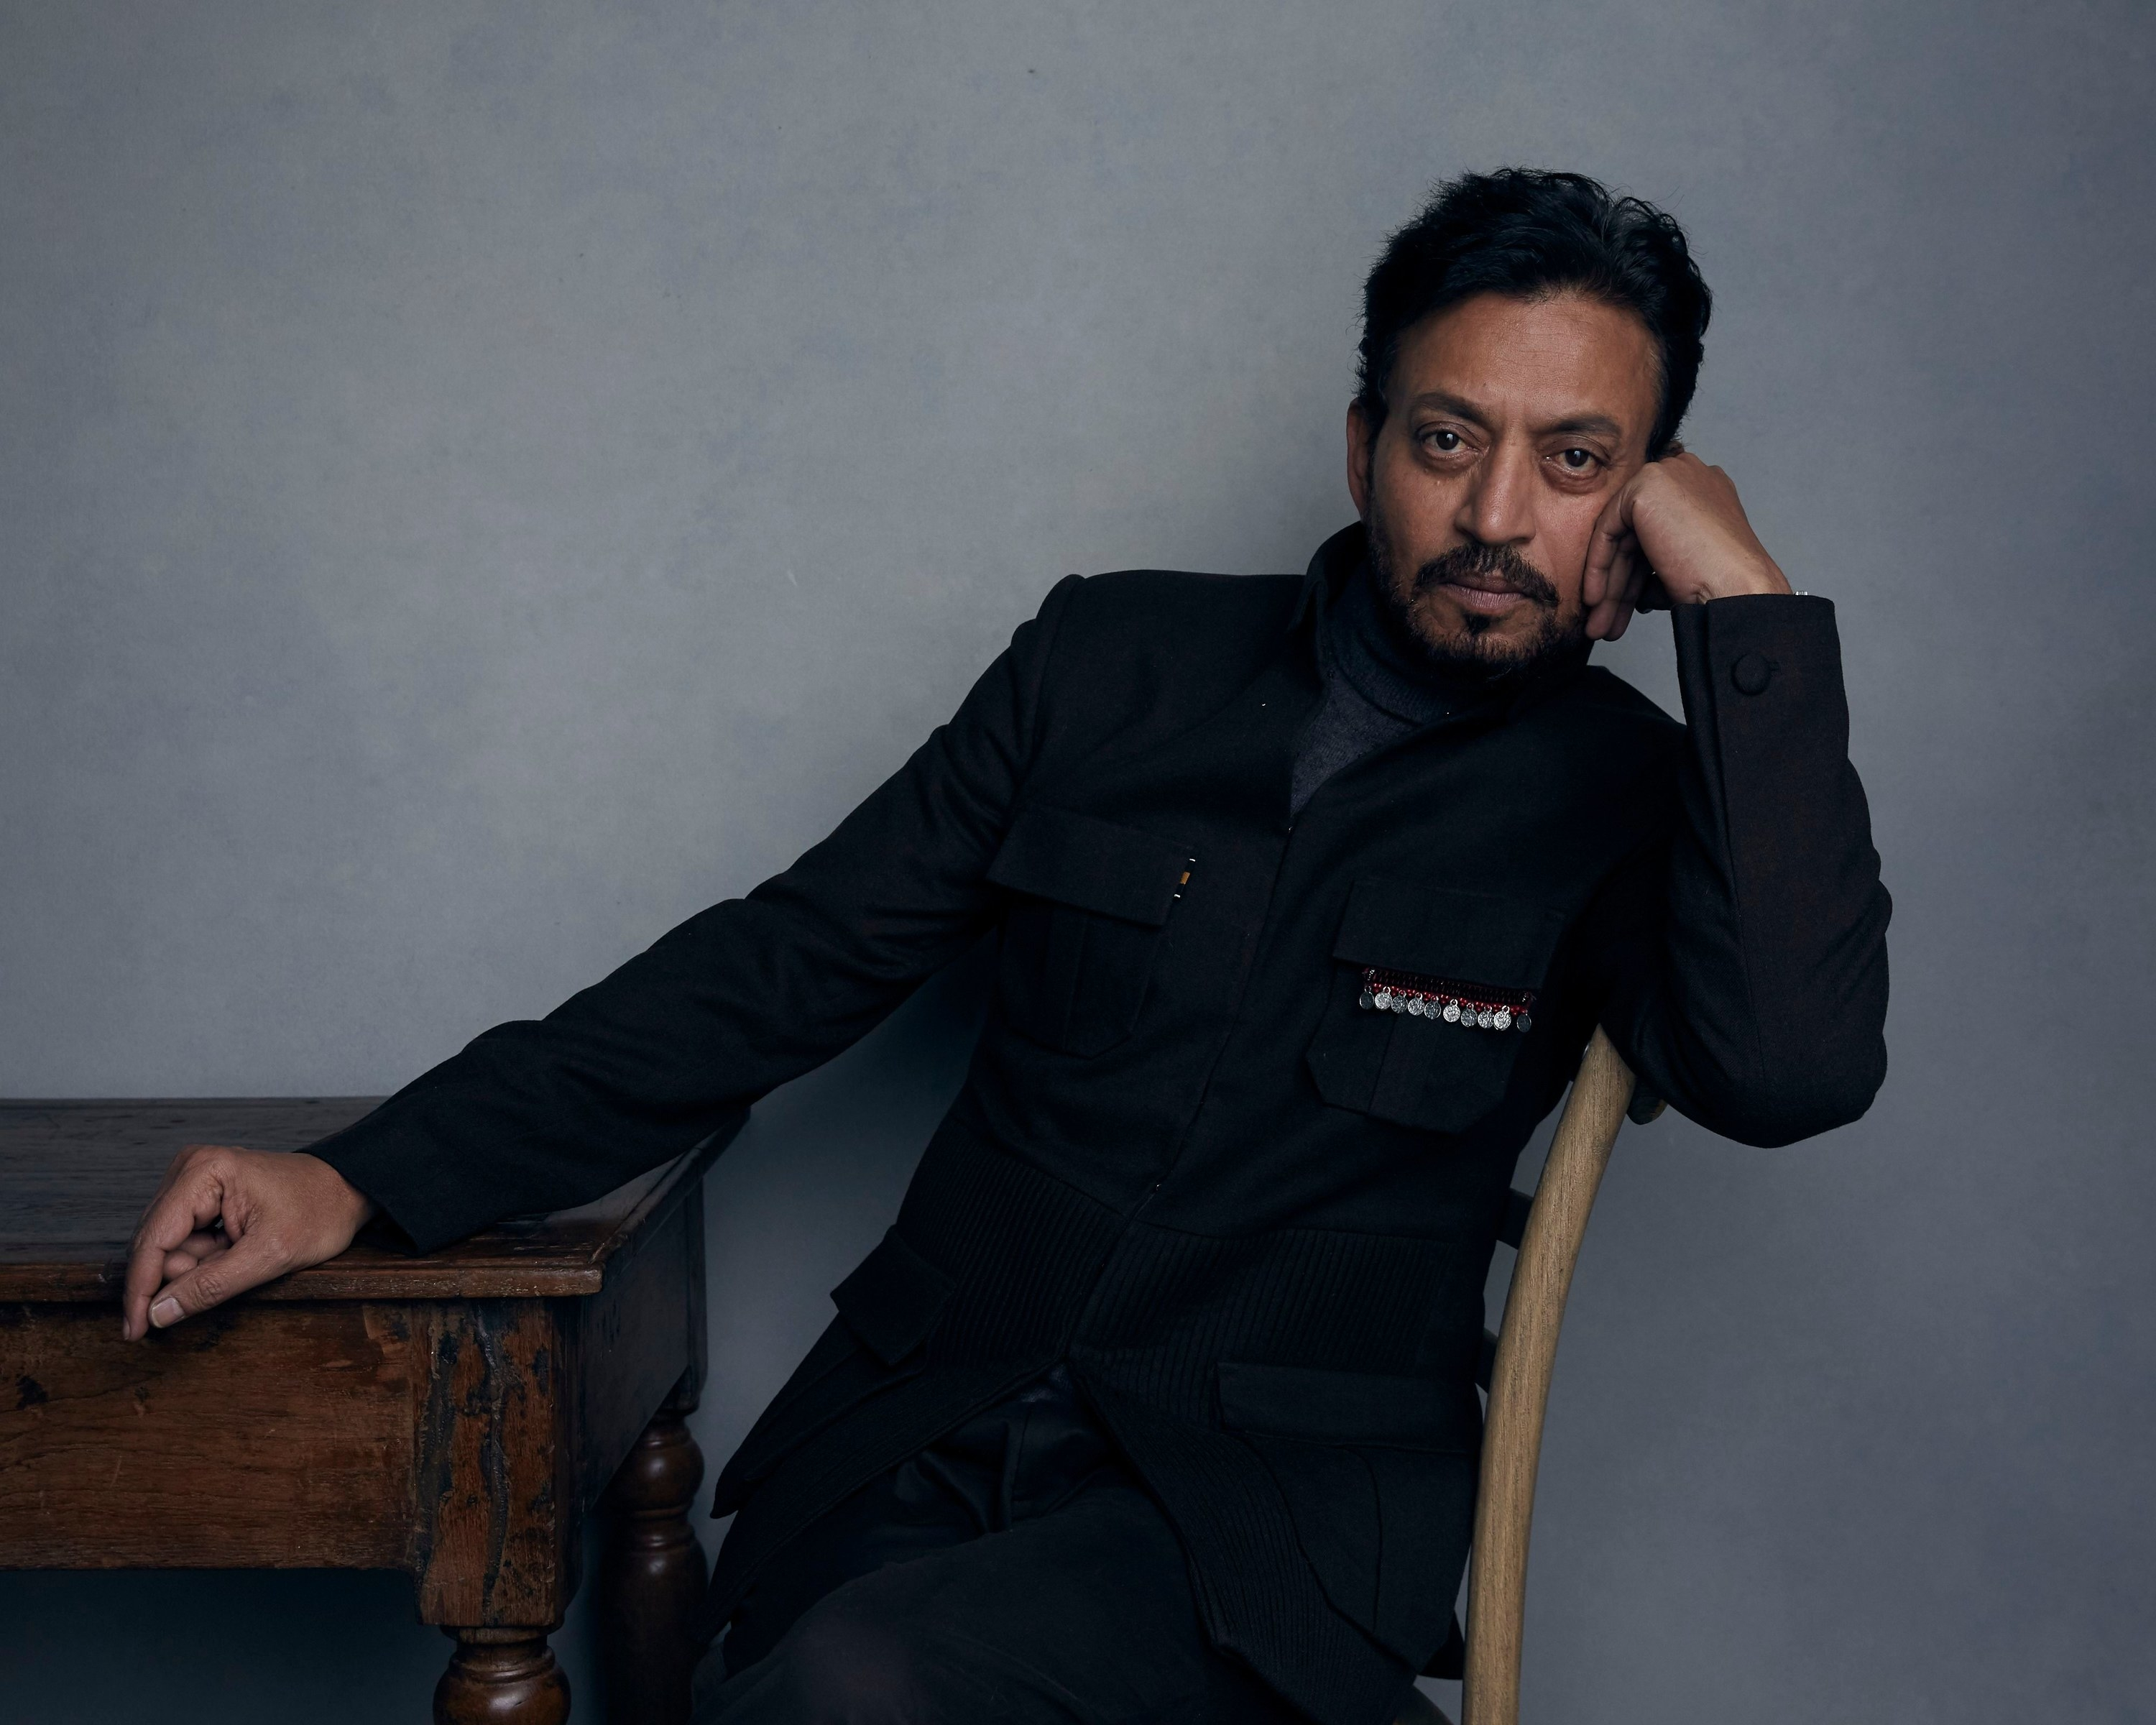 Khan in a black suit seated at a table, staring at the camera